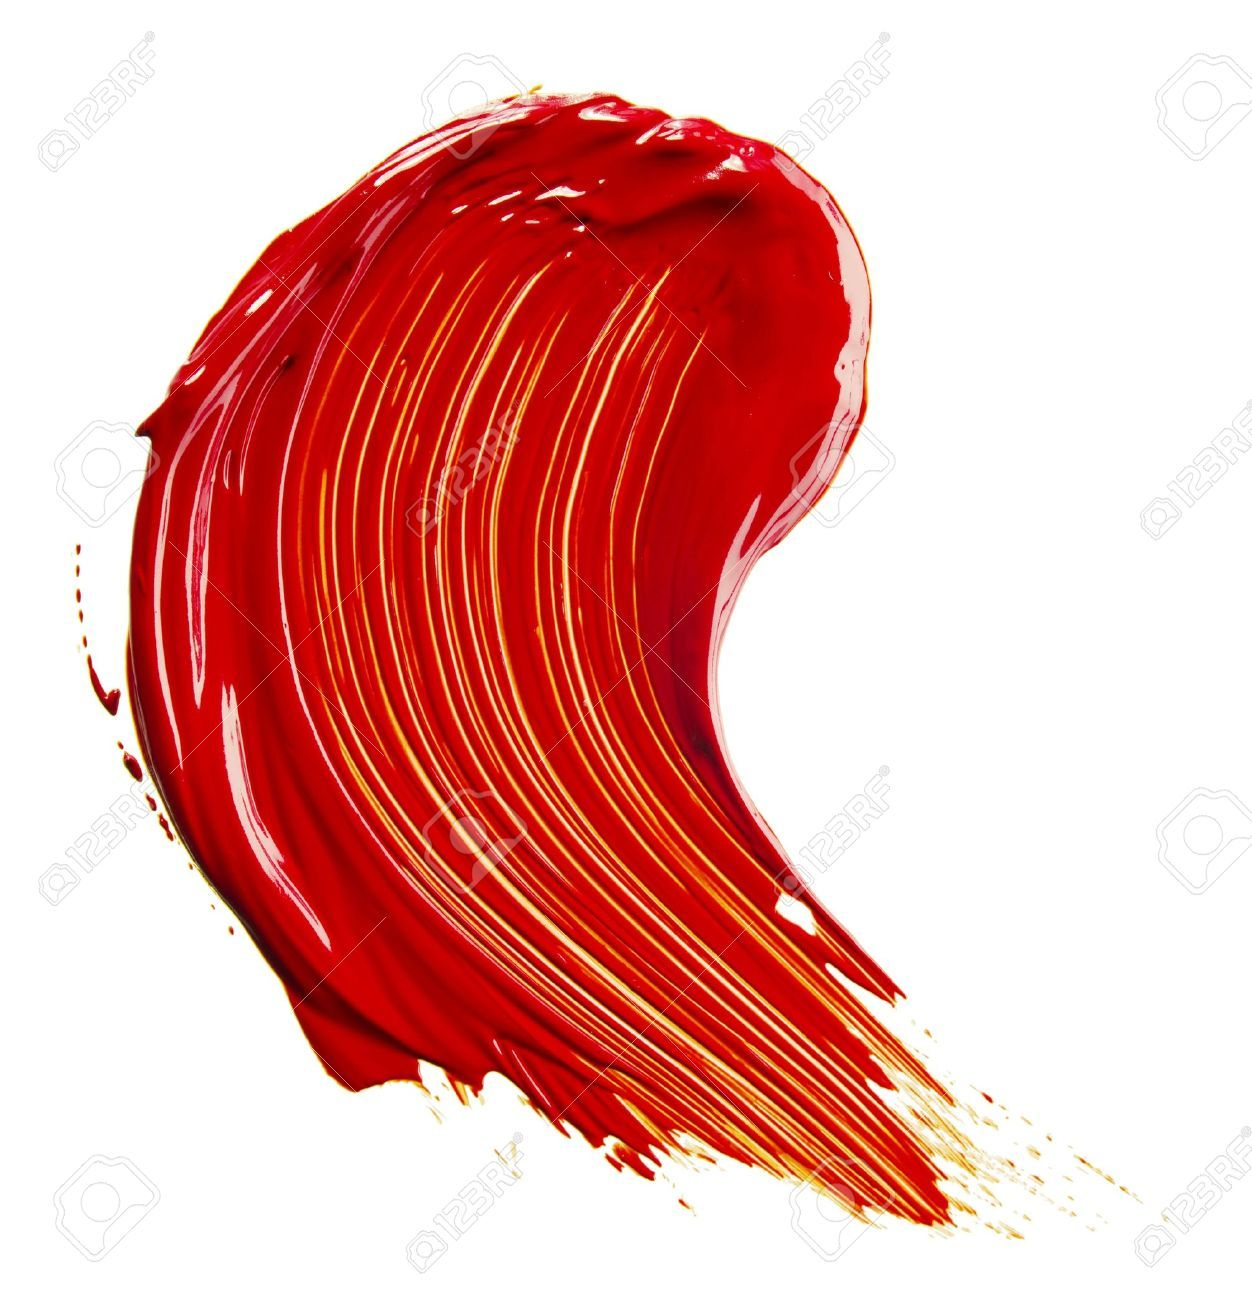 Red Paint red paint - google search | d r a m a | pinterest | red paint